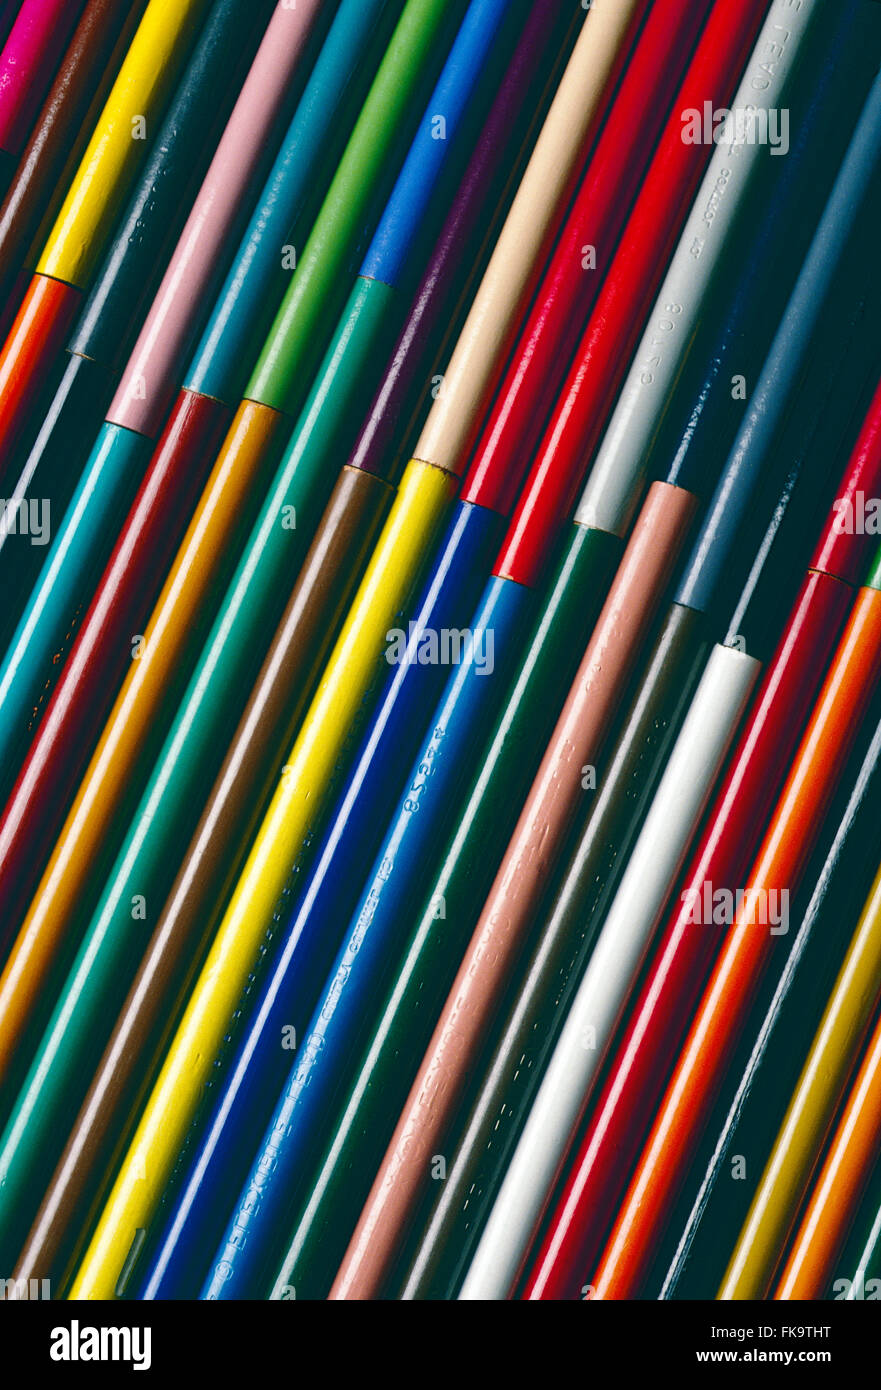 Close-up of colorful drawing pencils - Stock Image